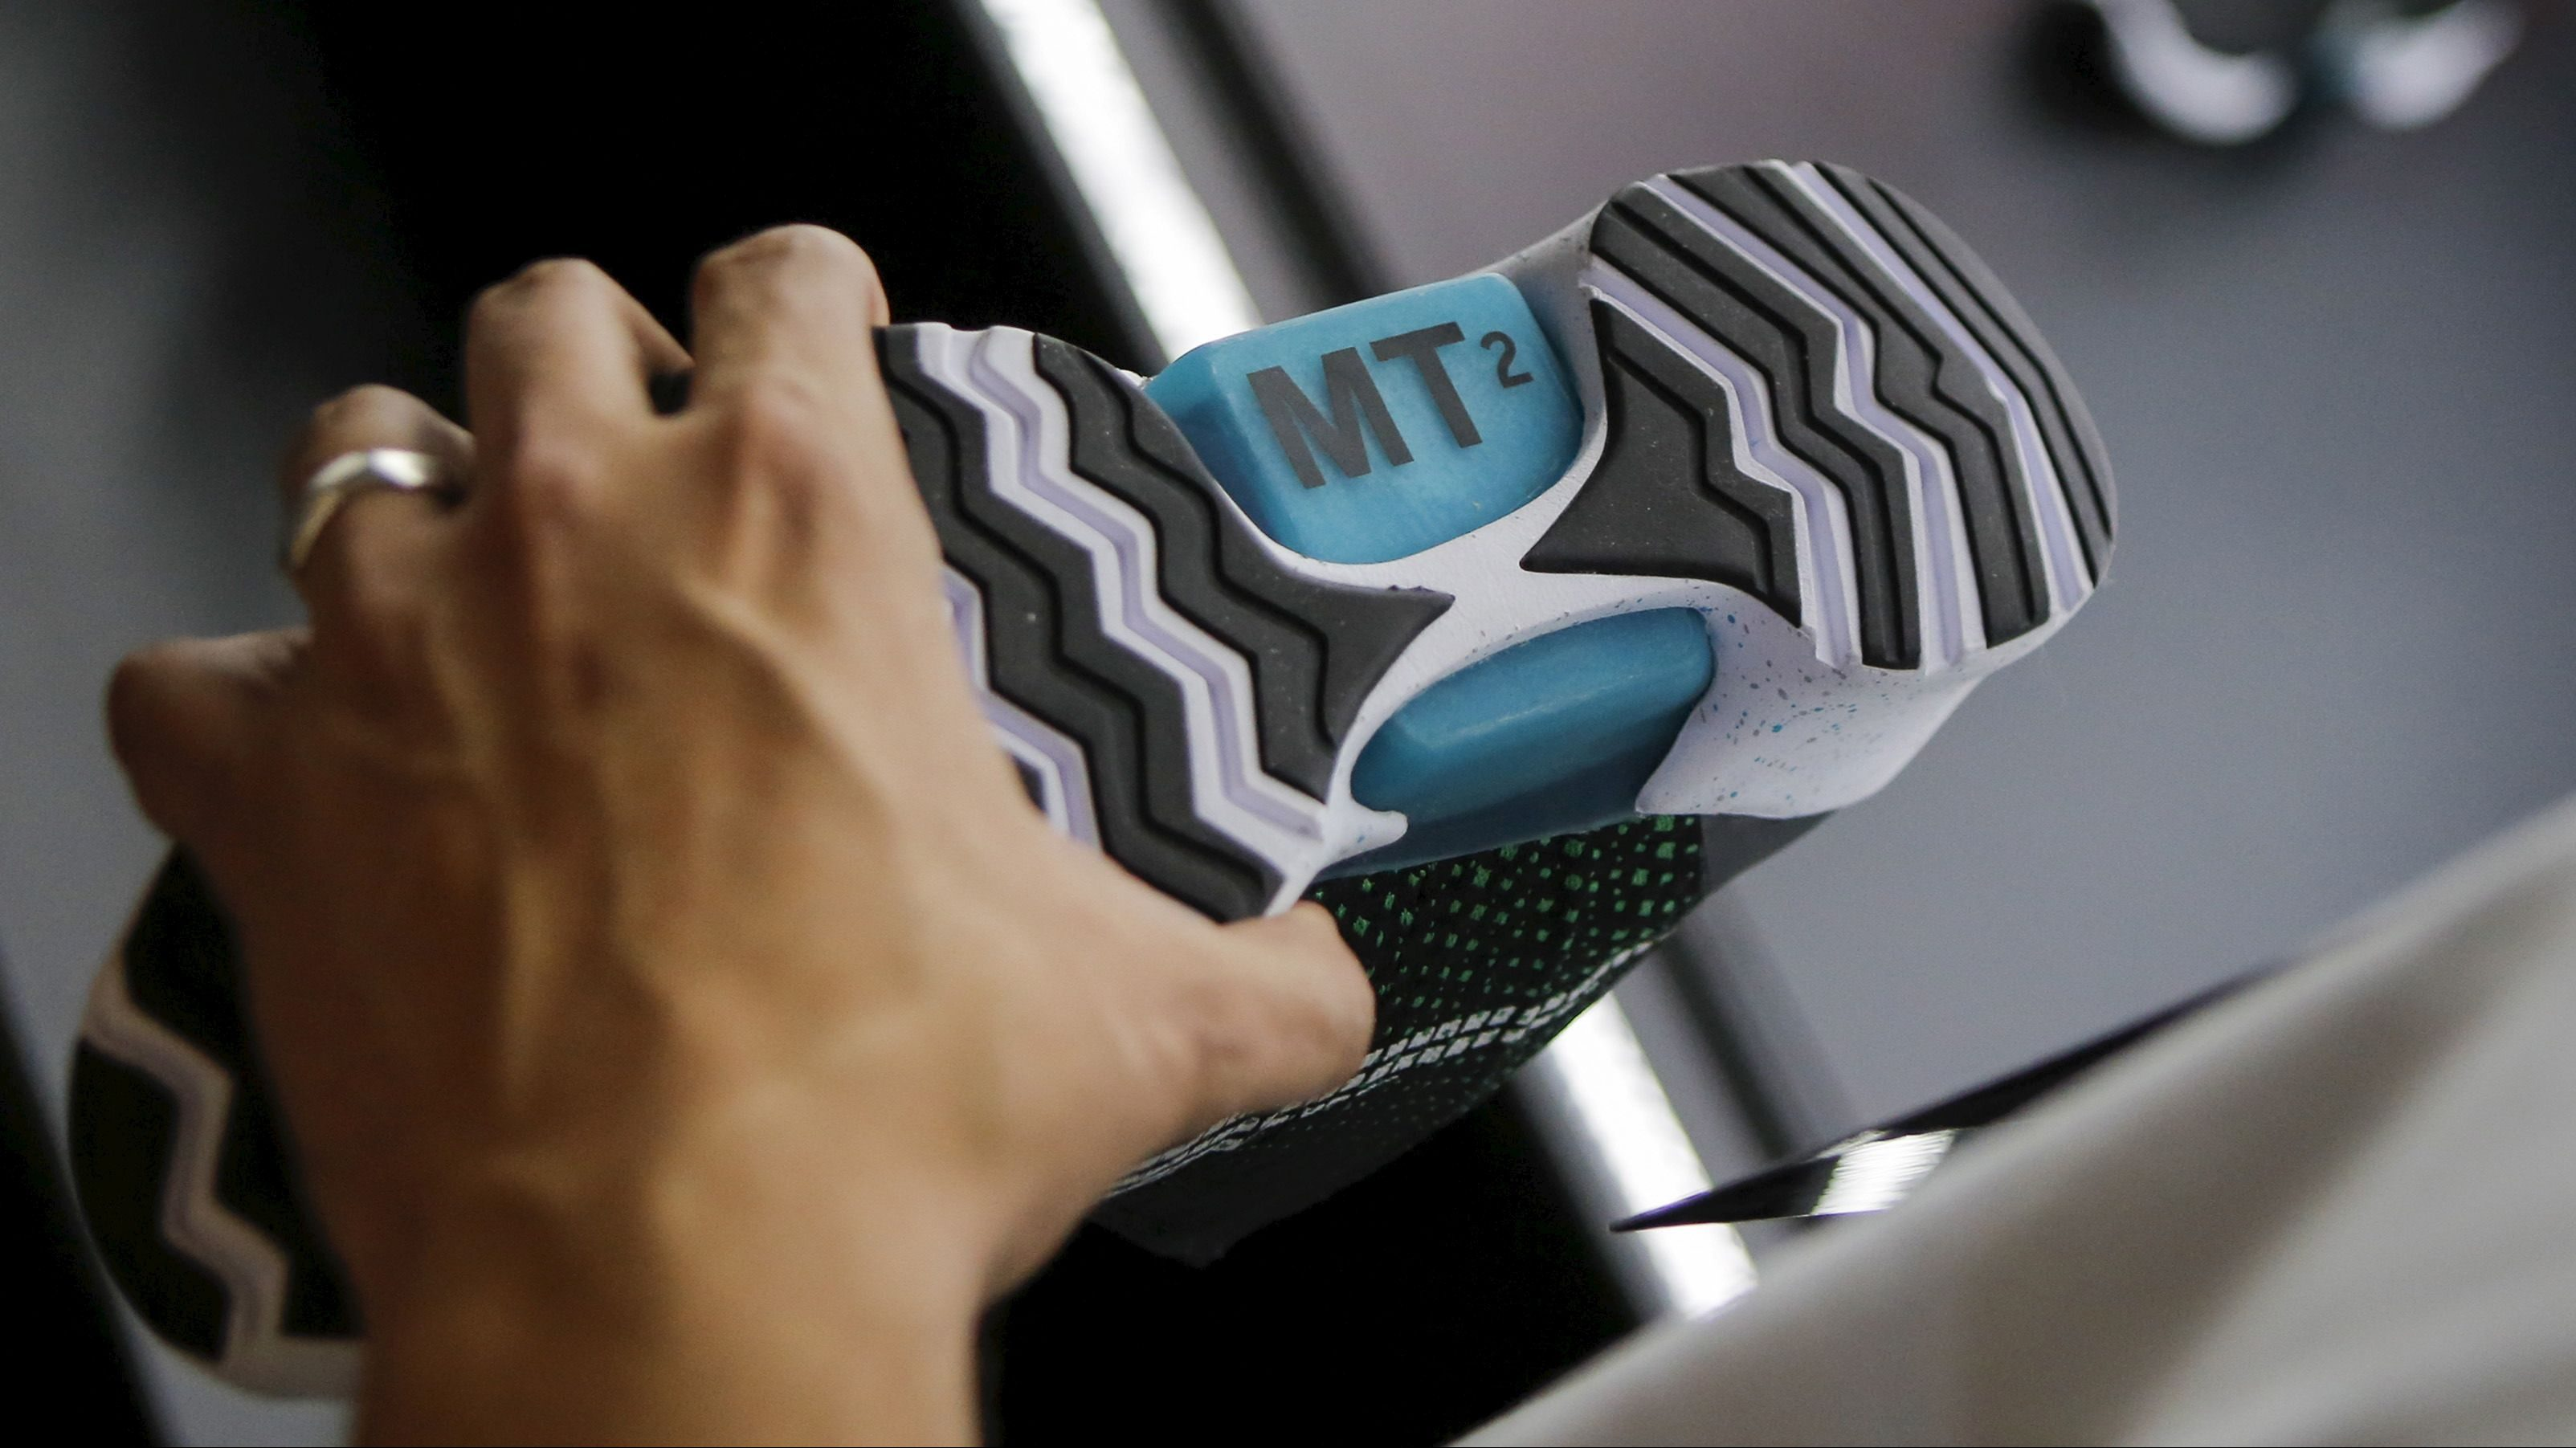 A man takes a look at the new Nike HyperAdapt sneakers with self-lacing technology during an unveiling event in New York, March 17, 2016. REUTERS/Eduardo Munoz - GF10000349629